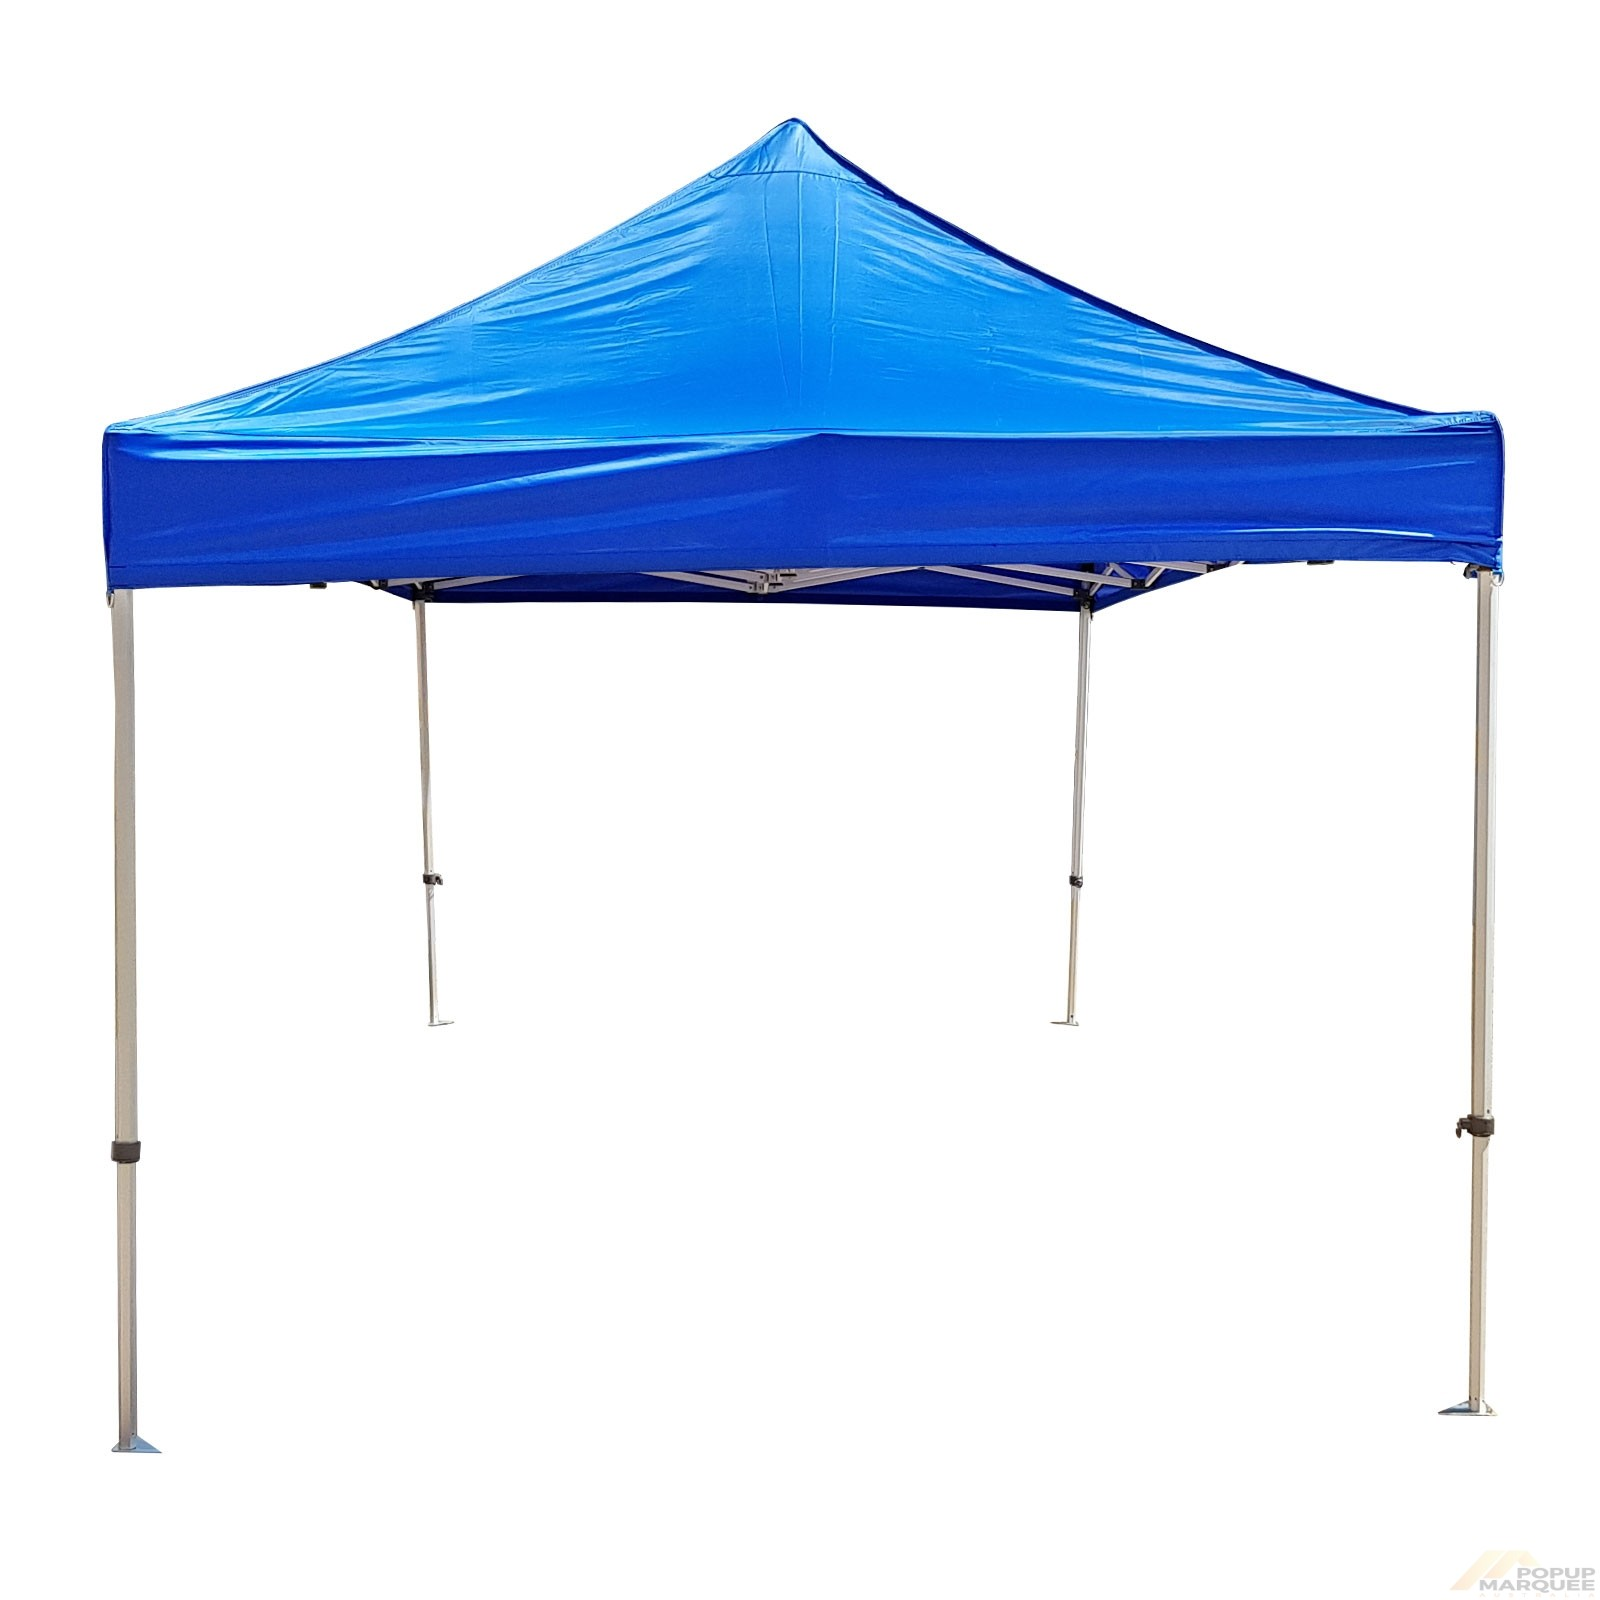 QuickTop 3x3m Blue Pop Up Marquee